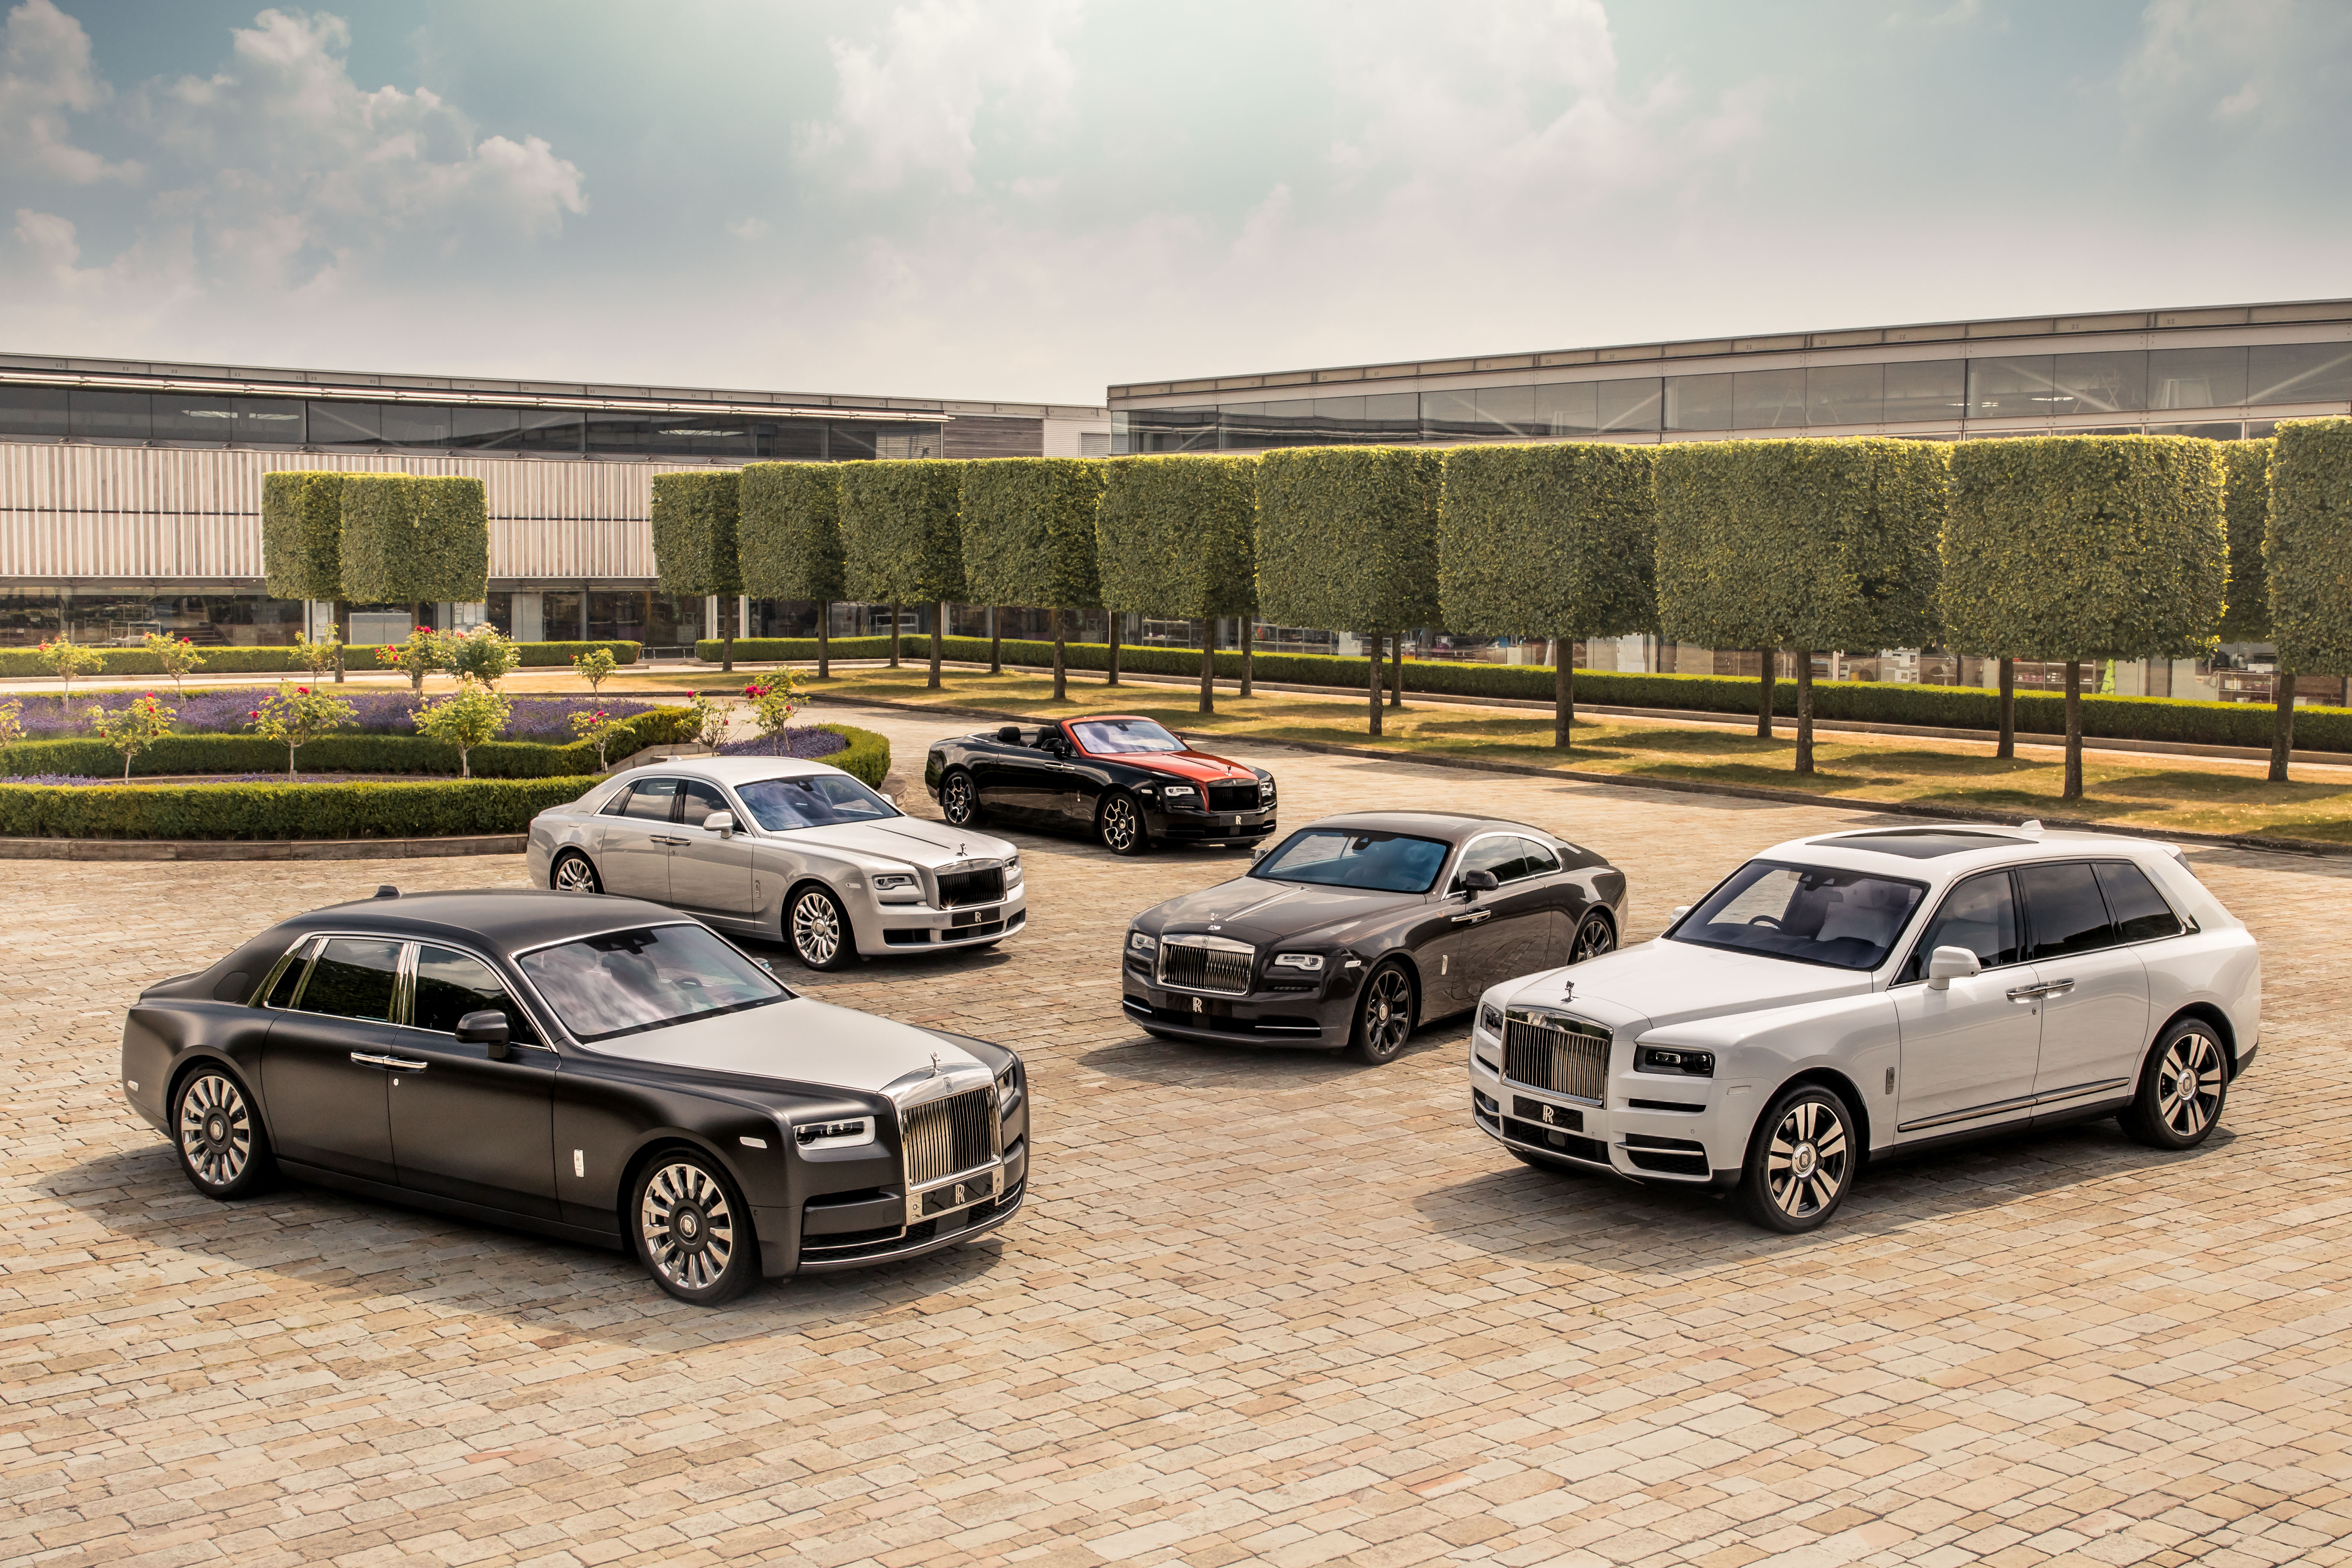 Rolls-Royce to Showcase Complete Portfolio of Motor Cars for the First Time at 2018 Goodwood Festival of Speed